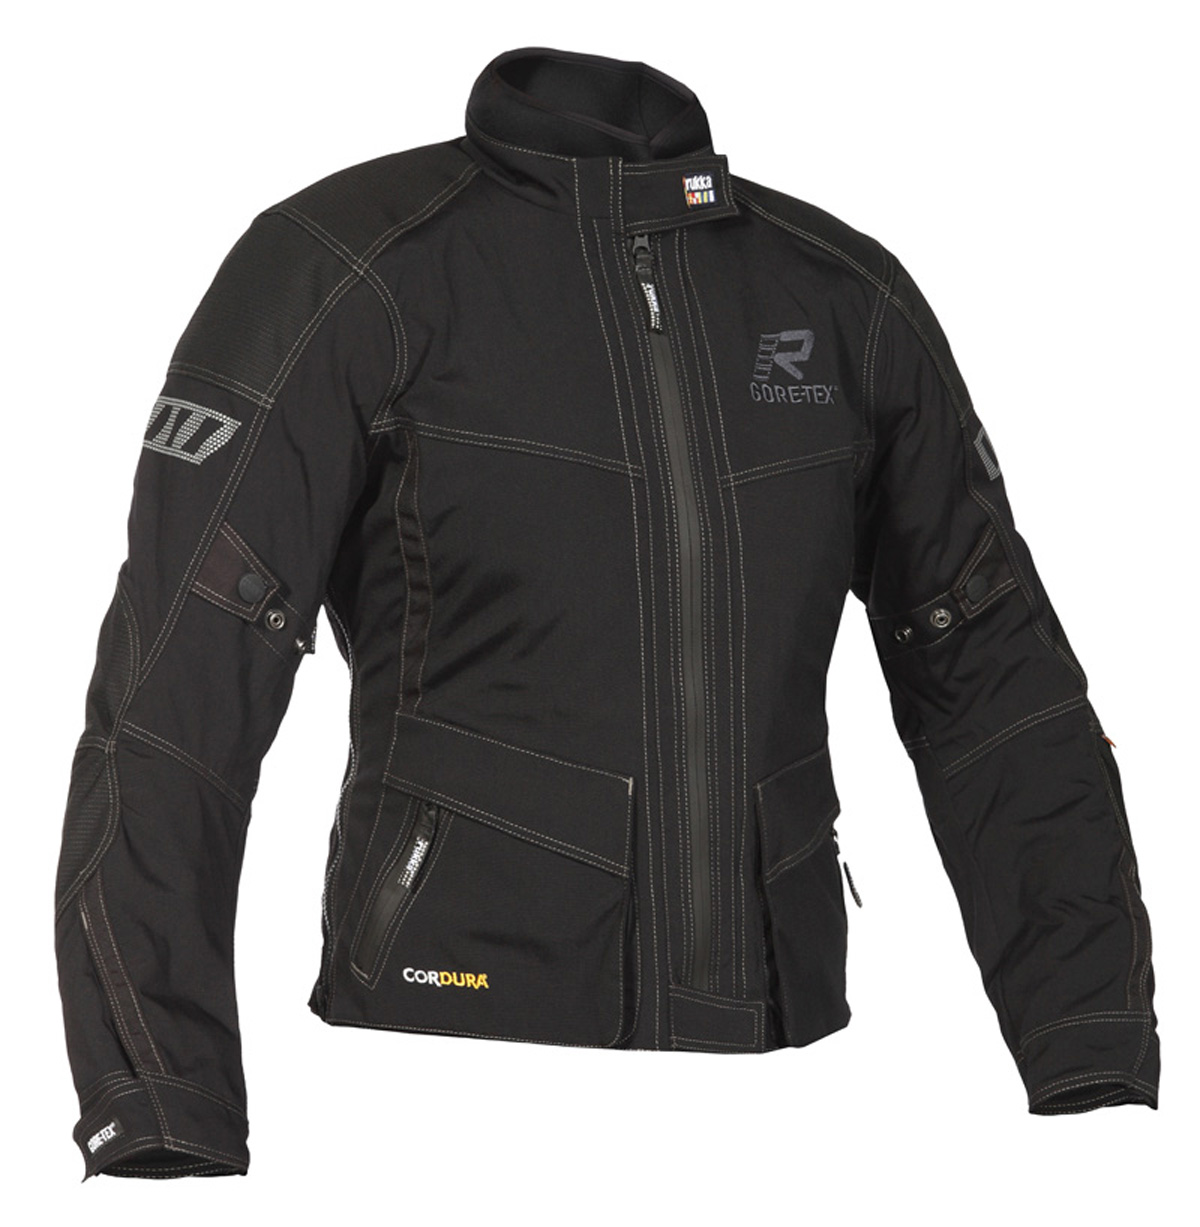 Rukka Motorcycle Clothing Review